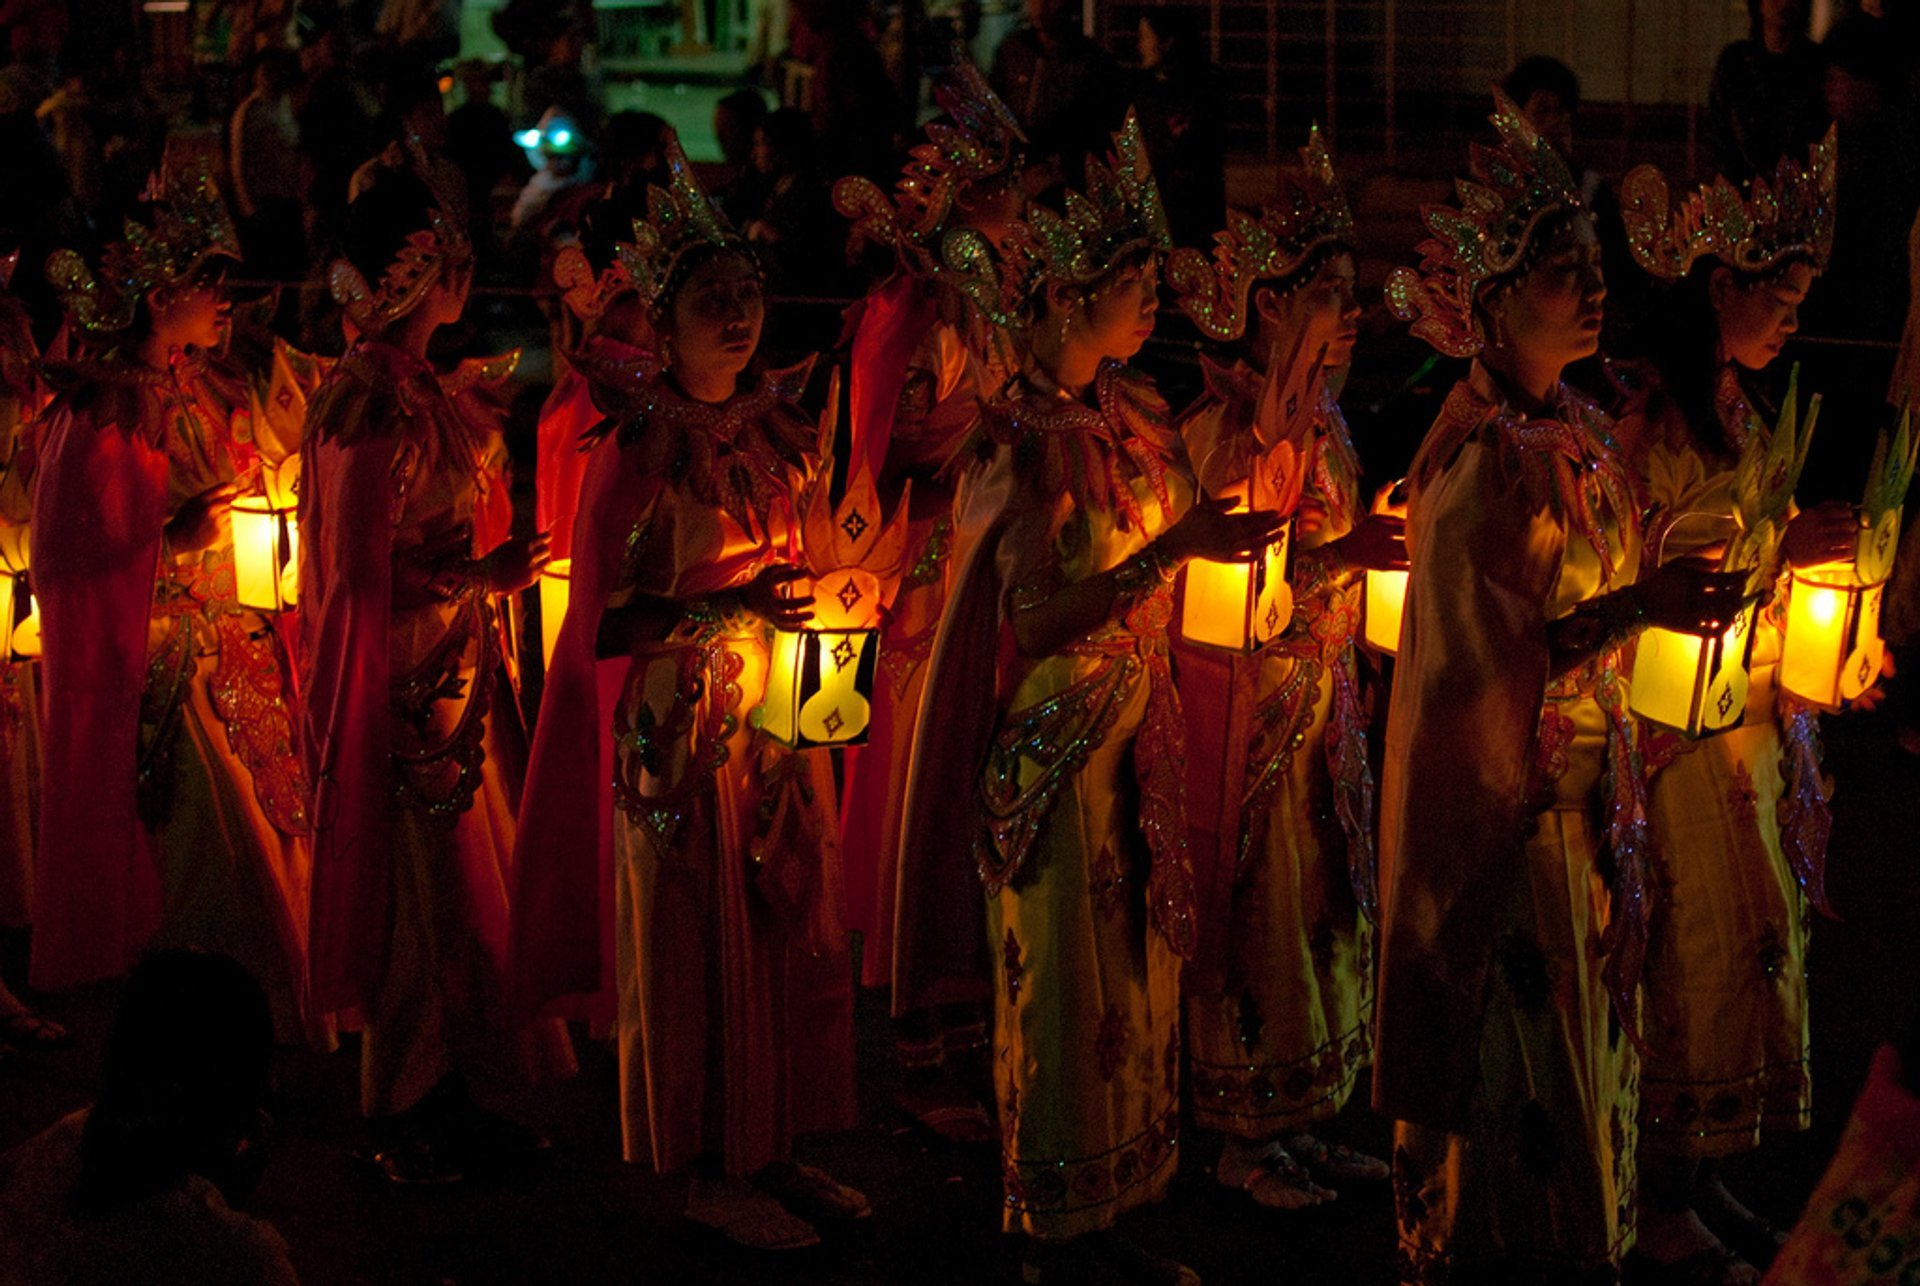 Light procession in Taunggyi 2020